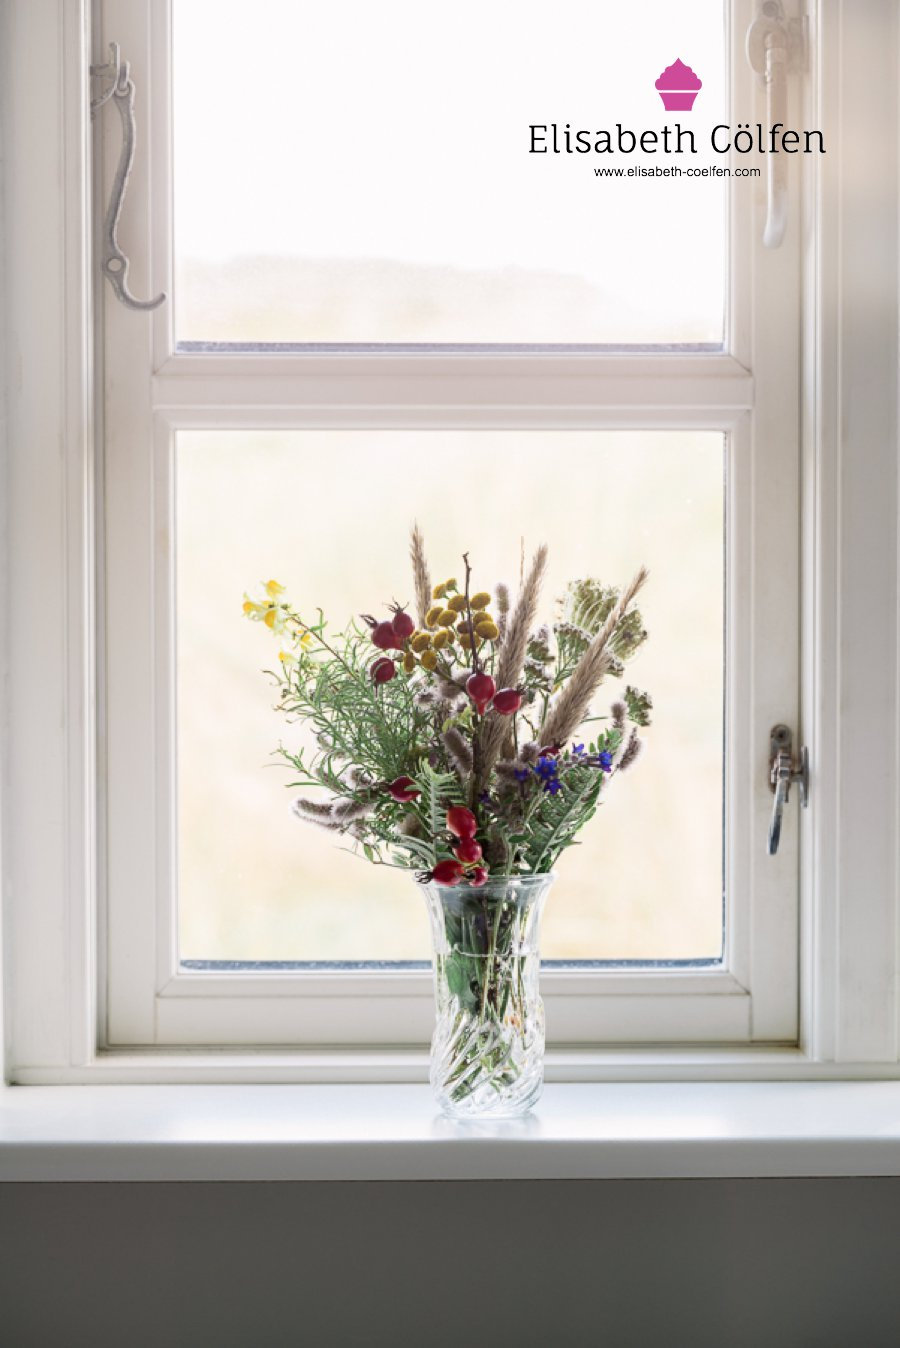 Wooden window with a bouquet of wild flowers found in the dunes in a window